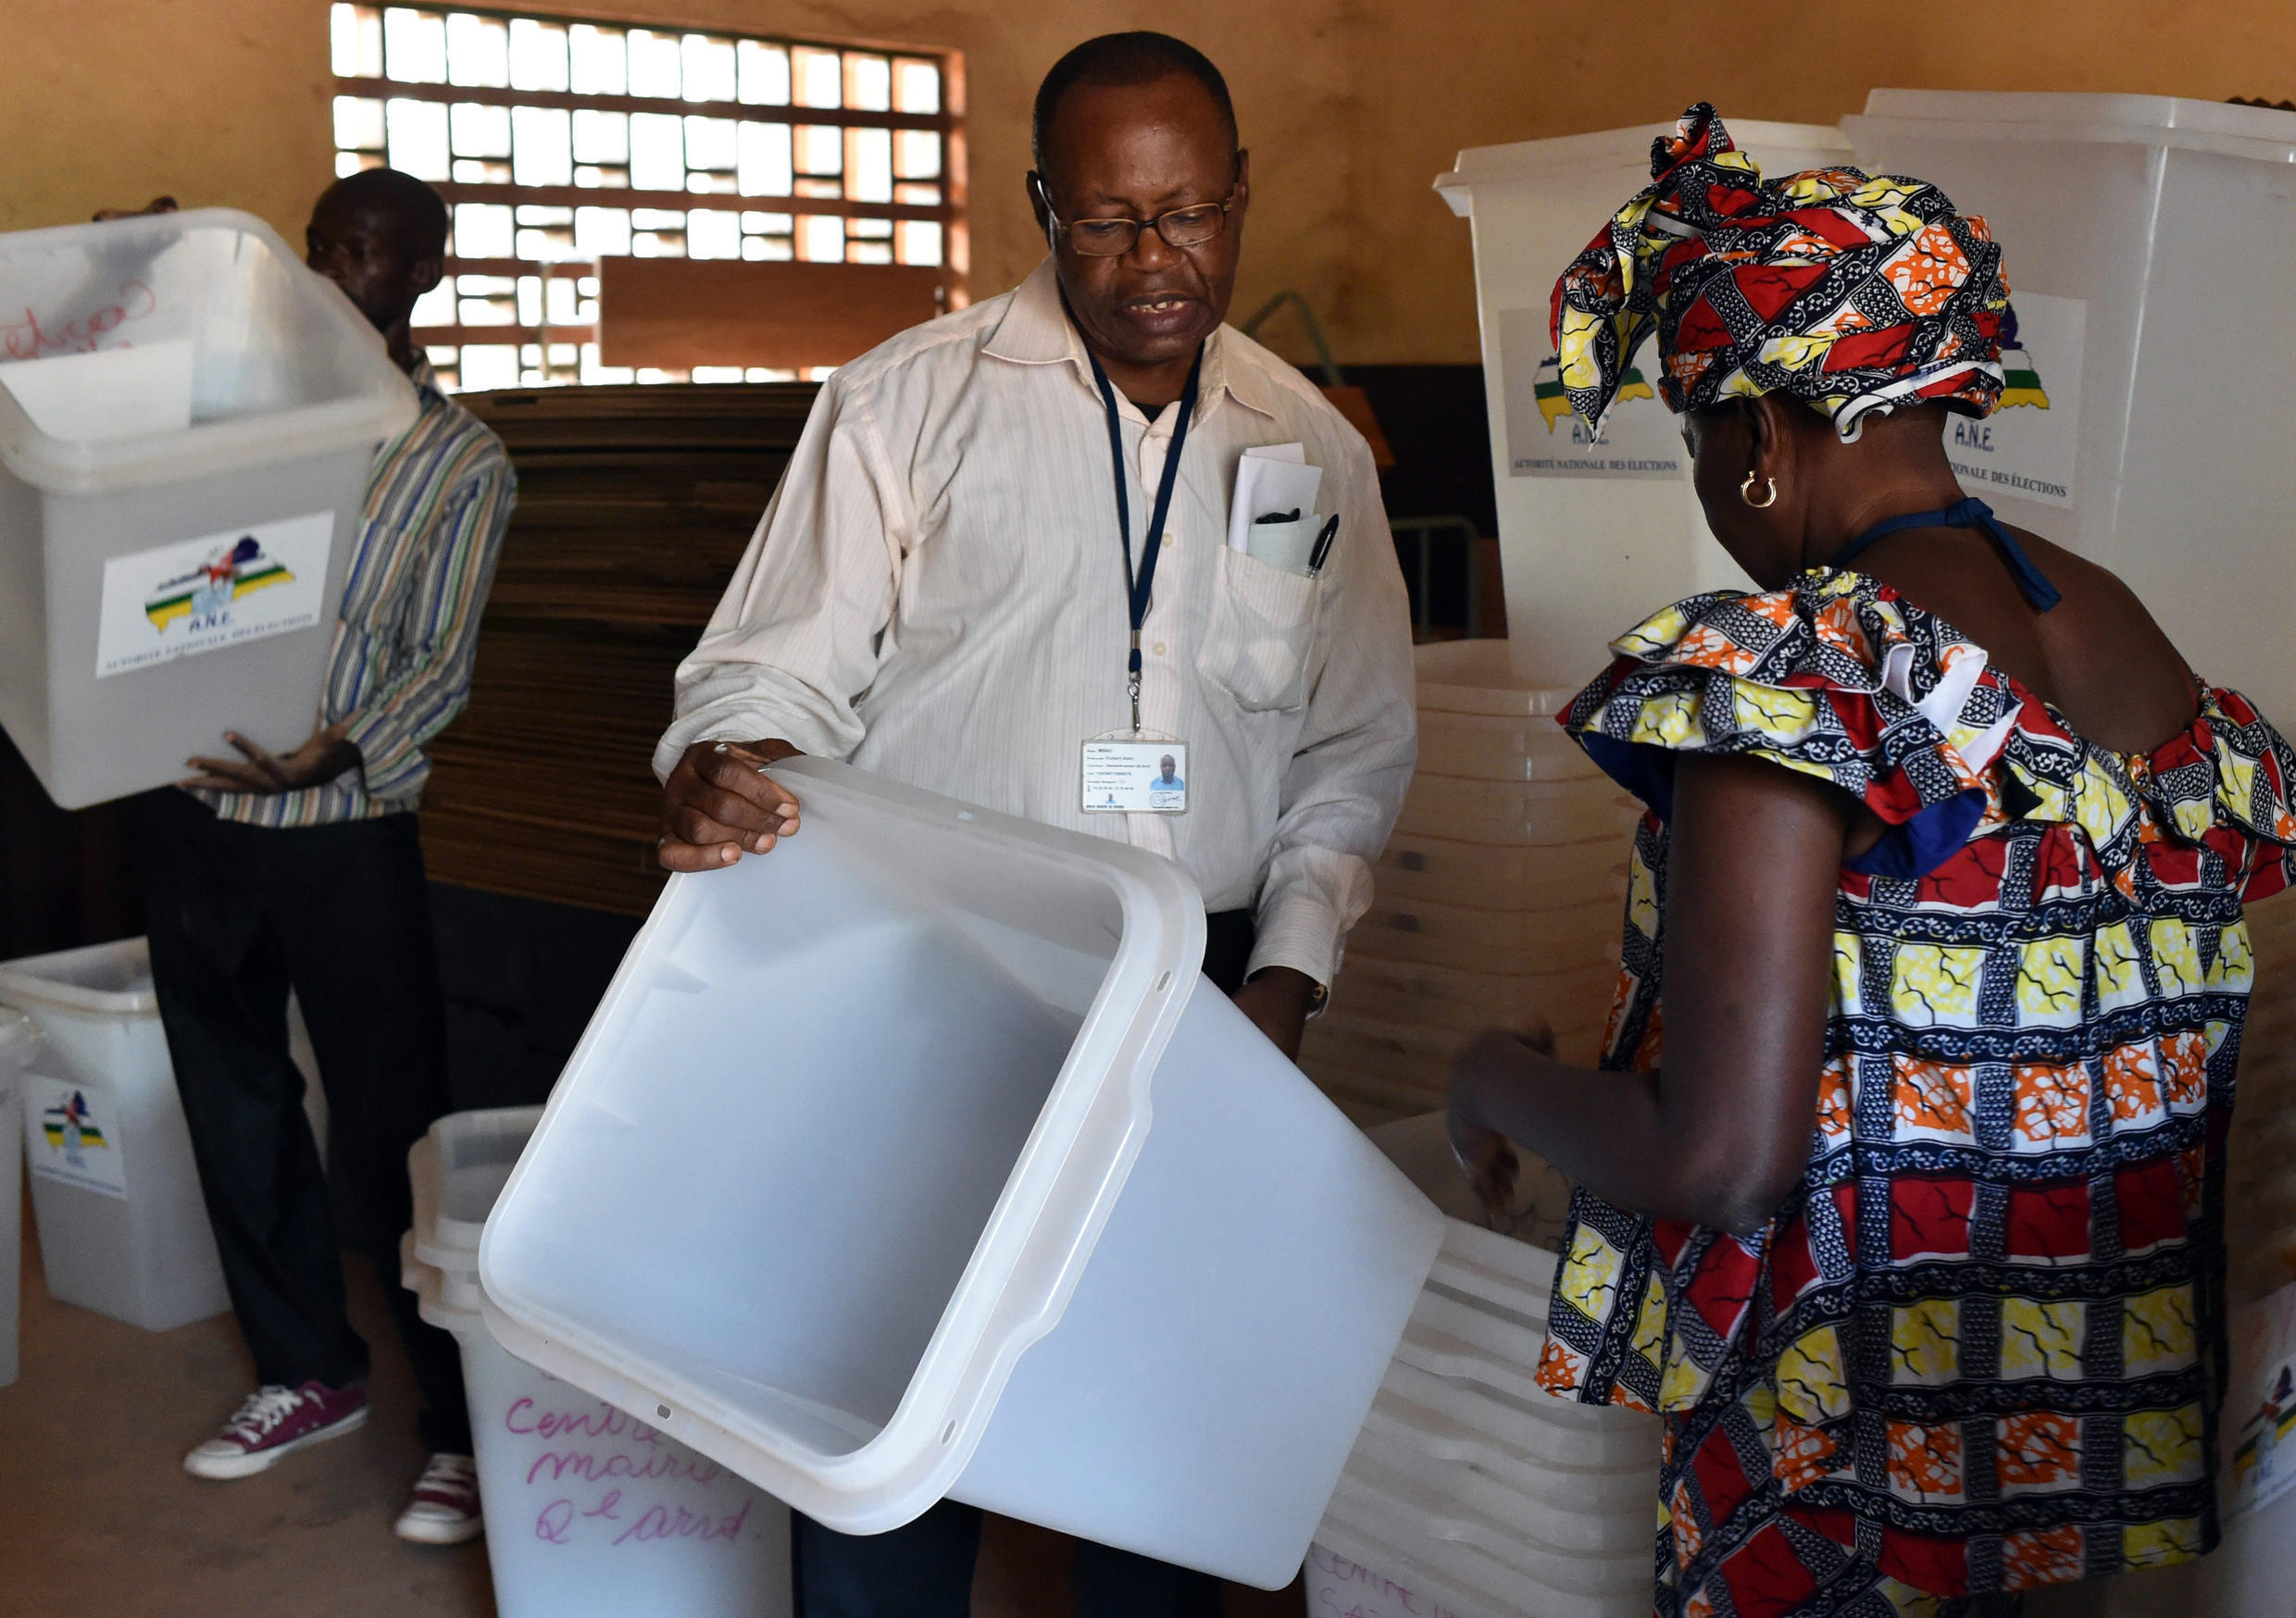 Preparations at polling stations in Bangui, Central African Republic